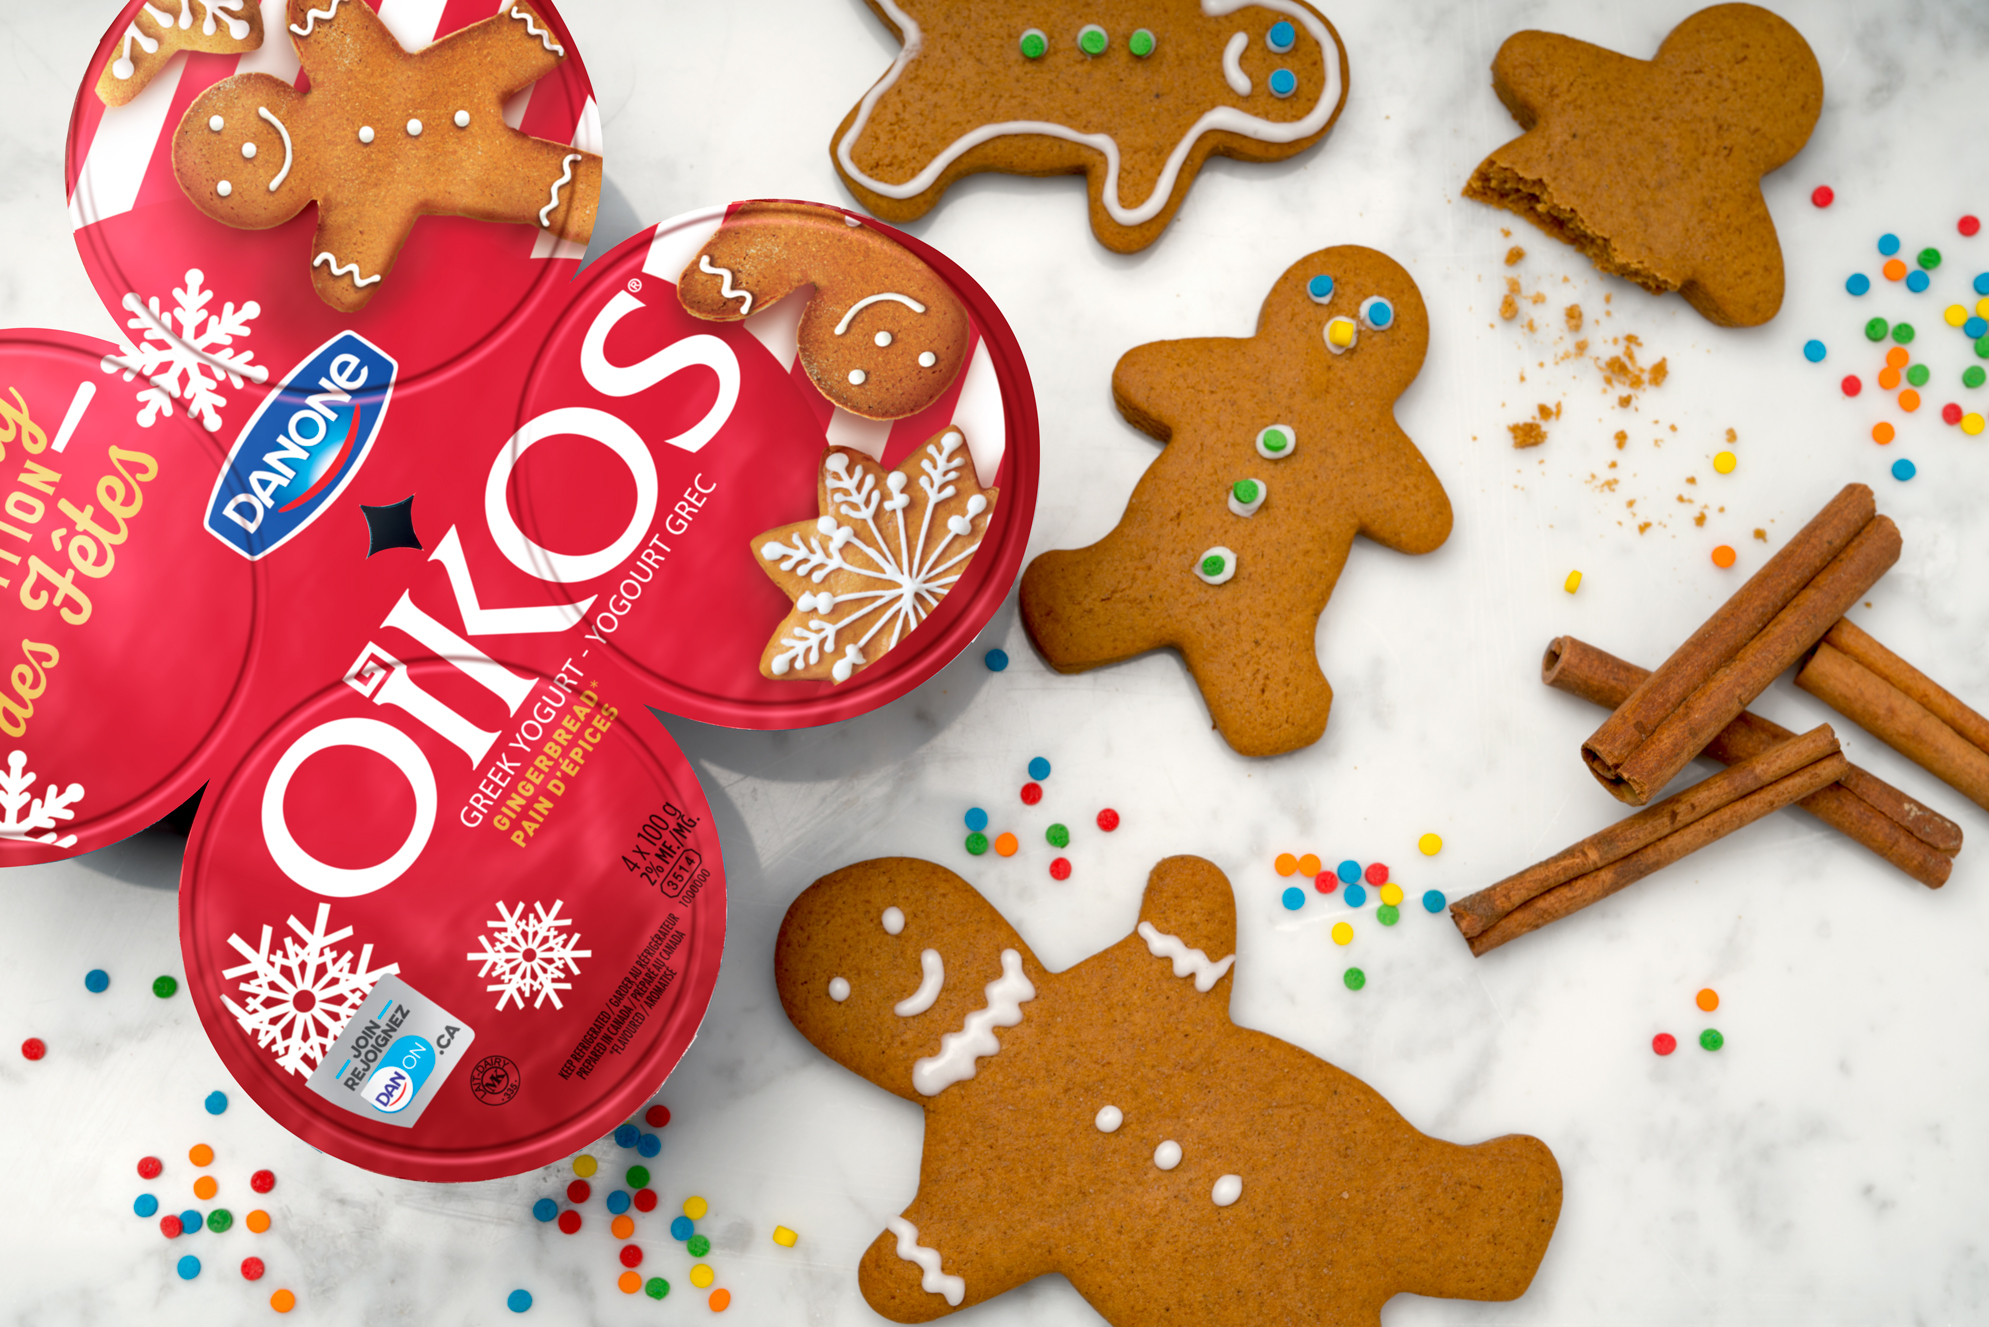 Nameless-Productions©-Oikos-Gingerbread